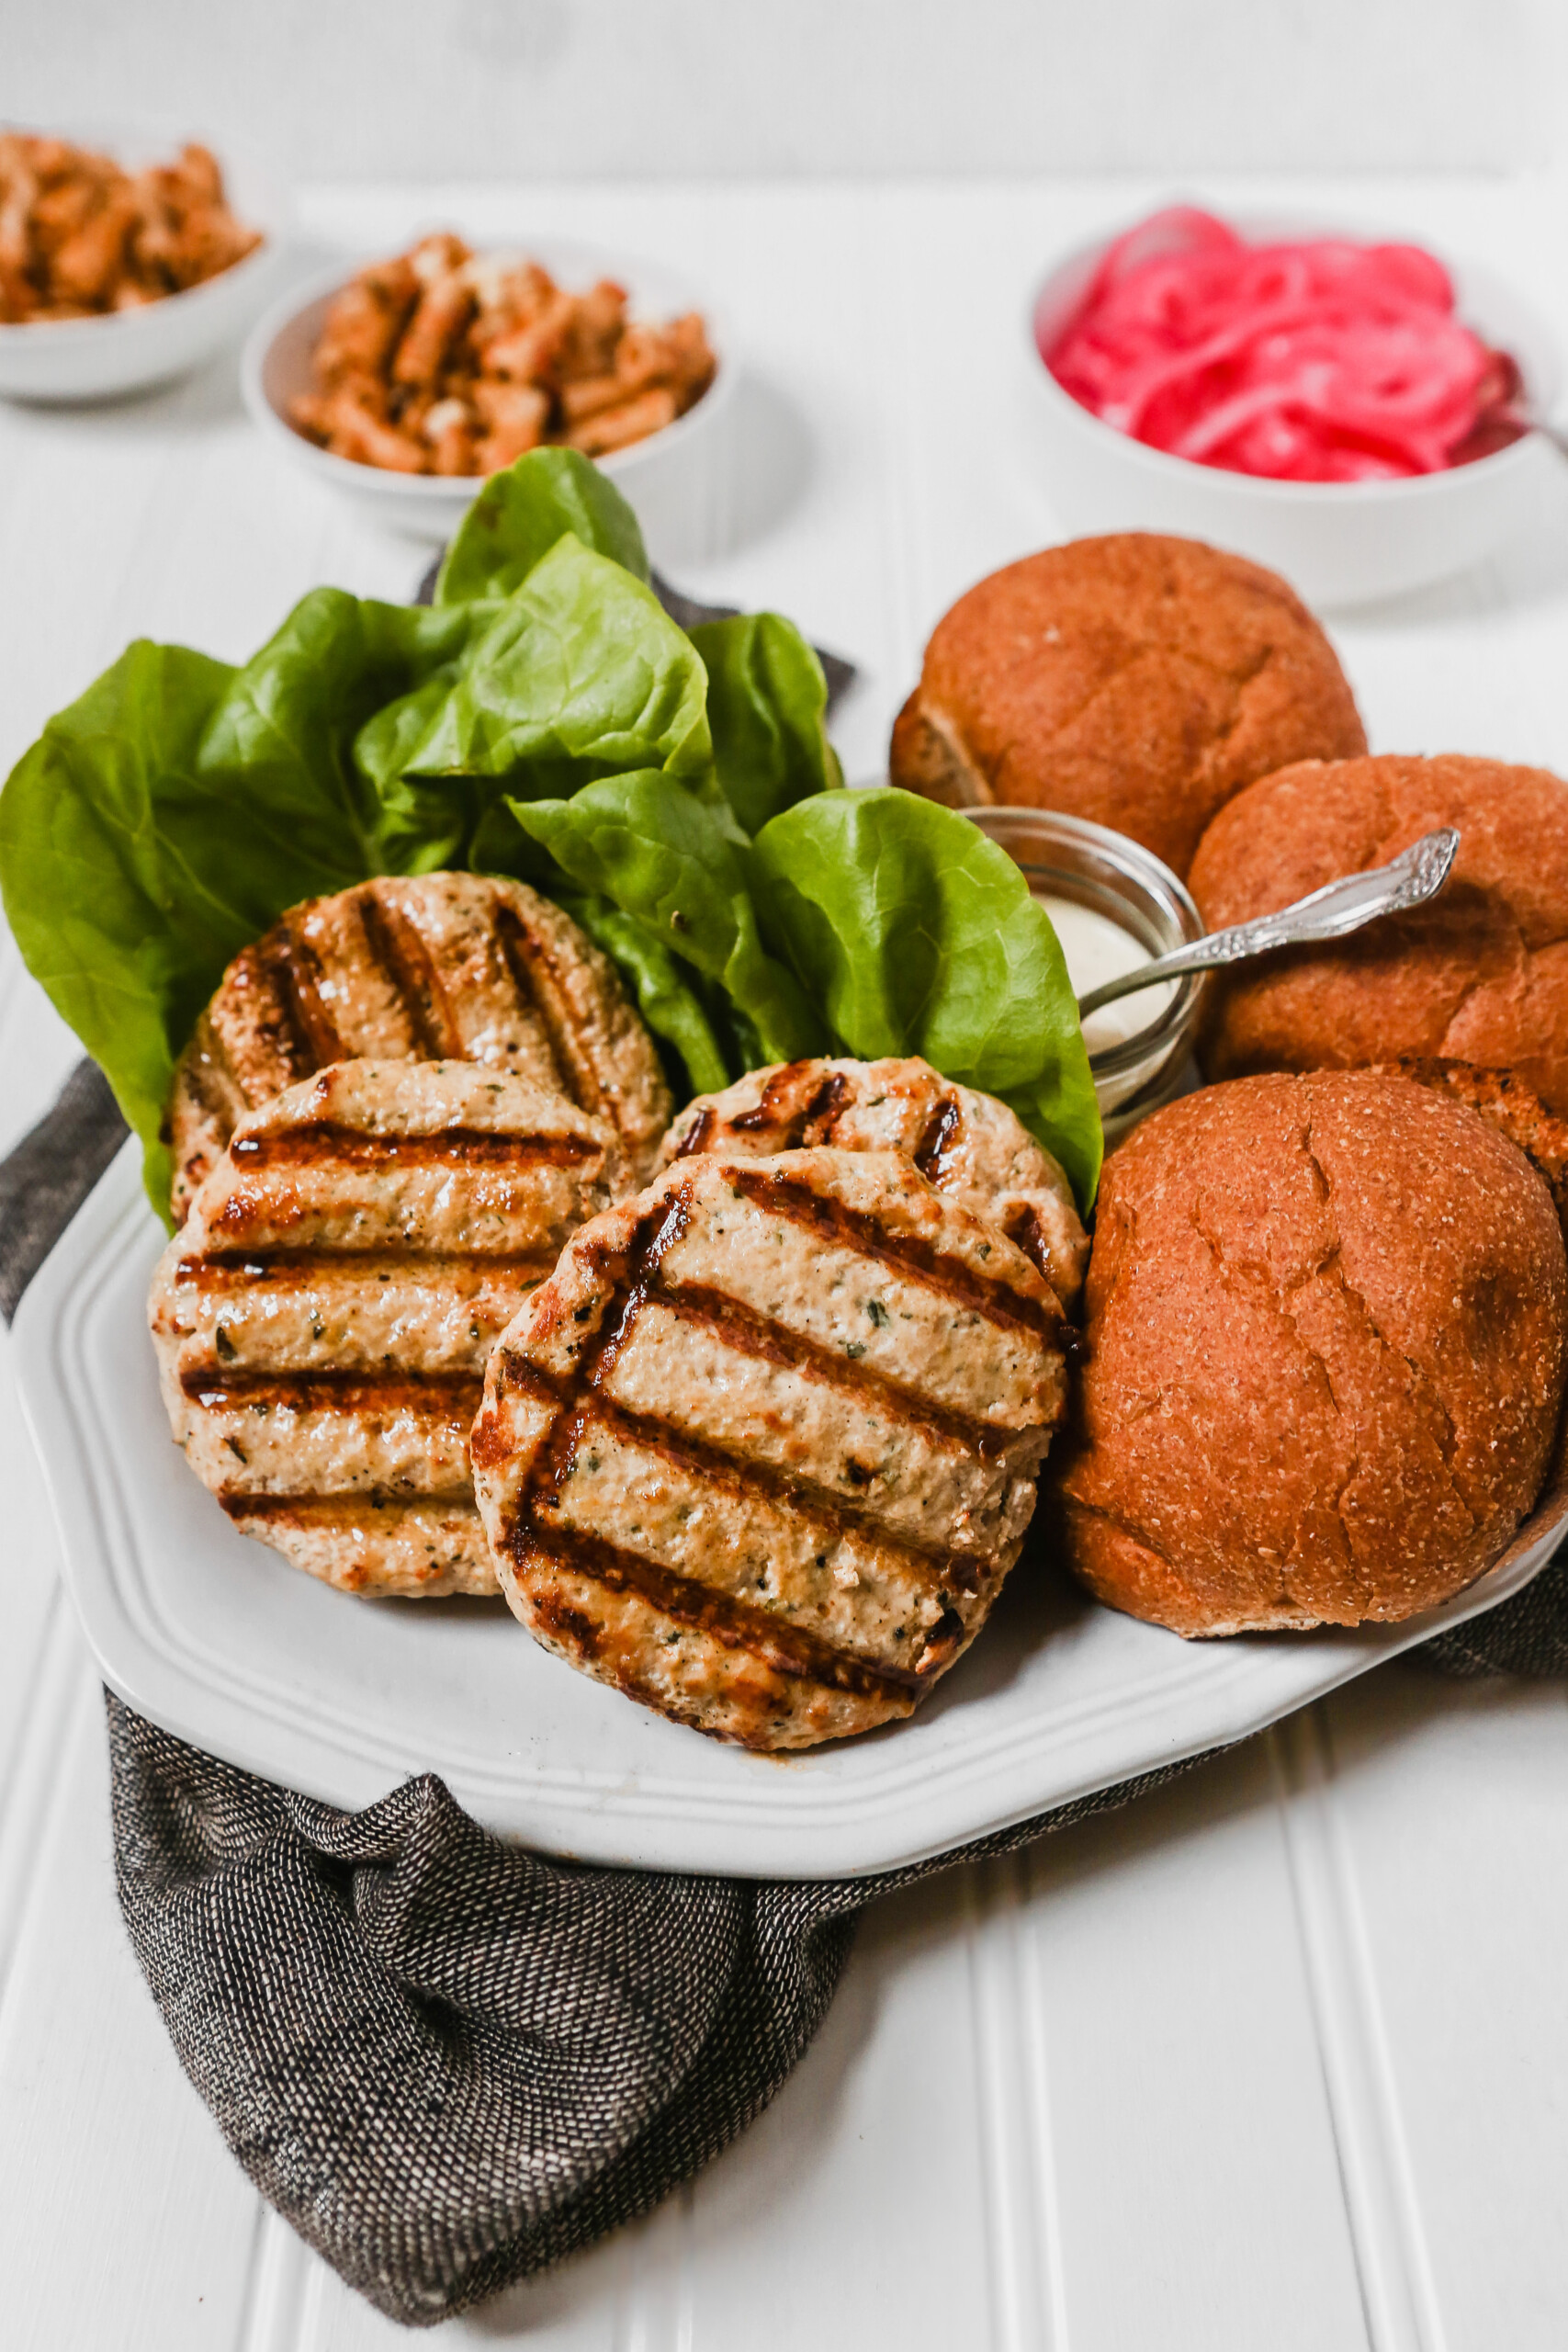 Photograph of turkey burgers on a large white platter with buns, lettuce, and yogurt sauce